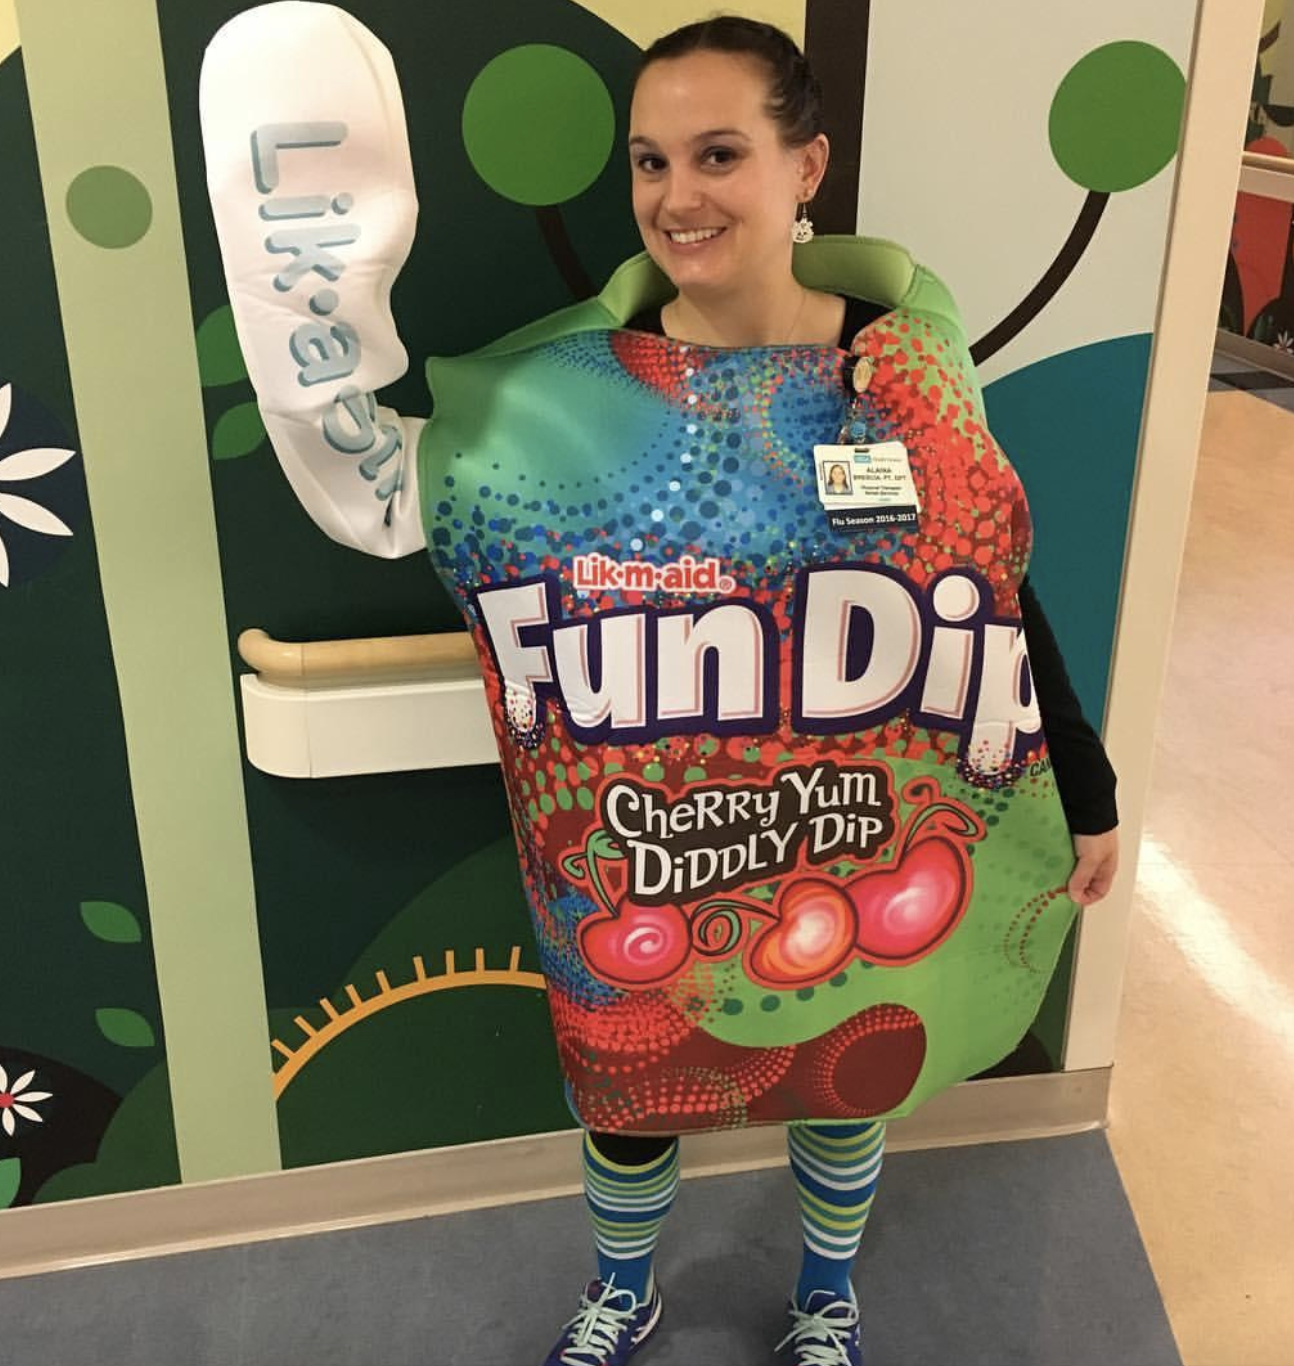 reviewer wearing the Fun Dip costume